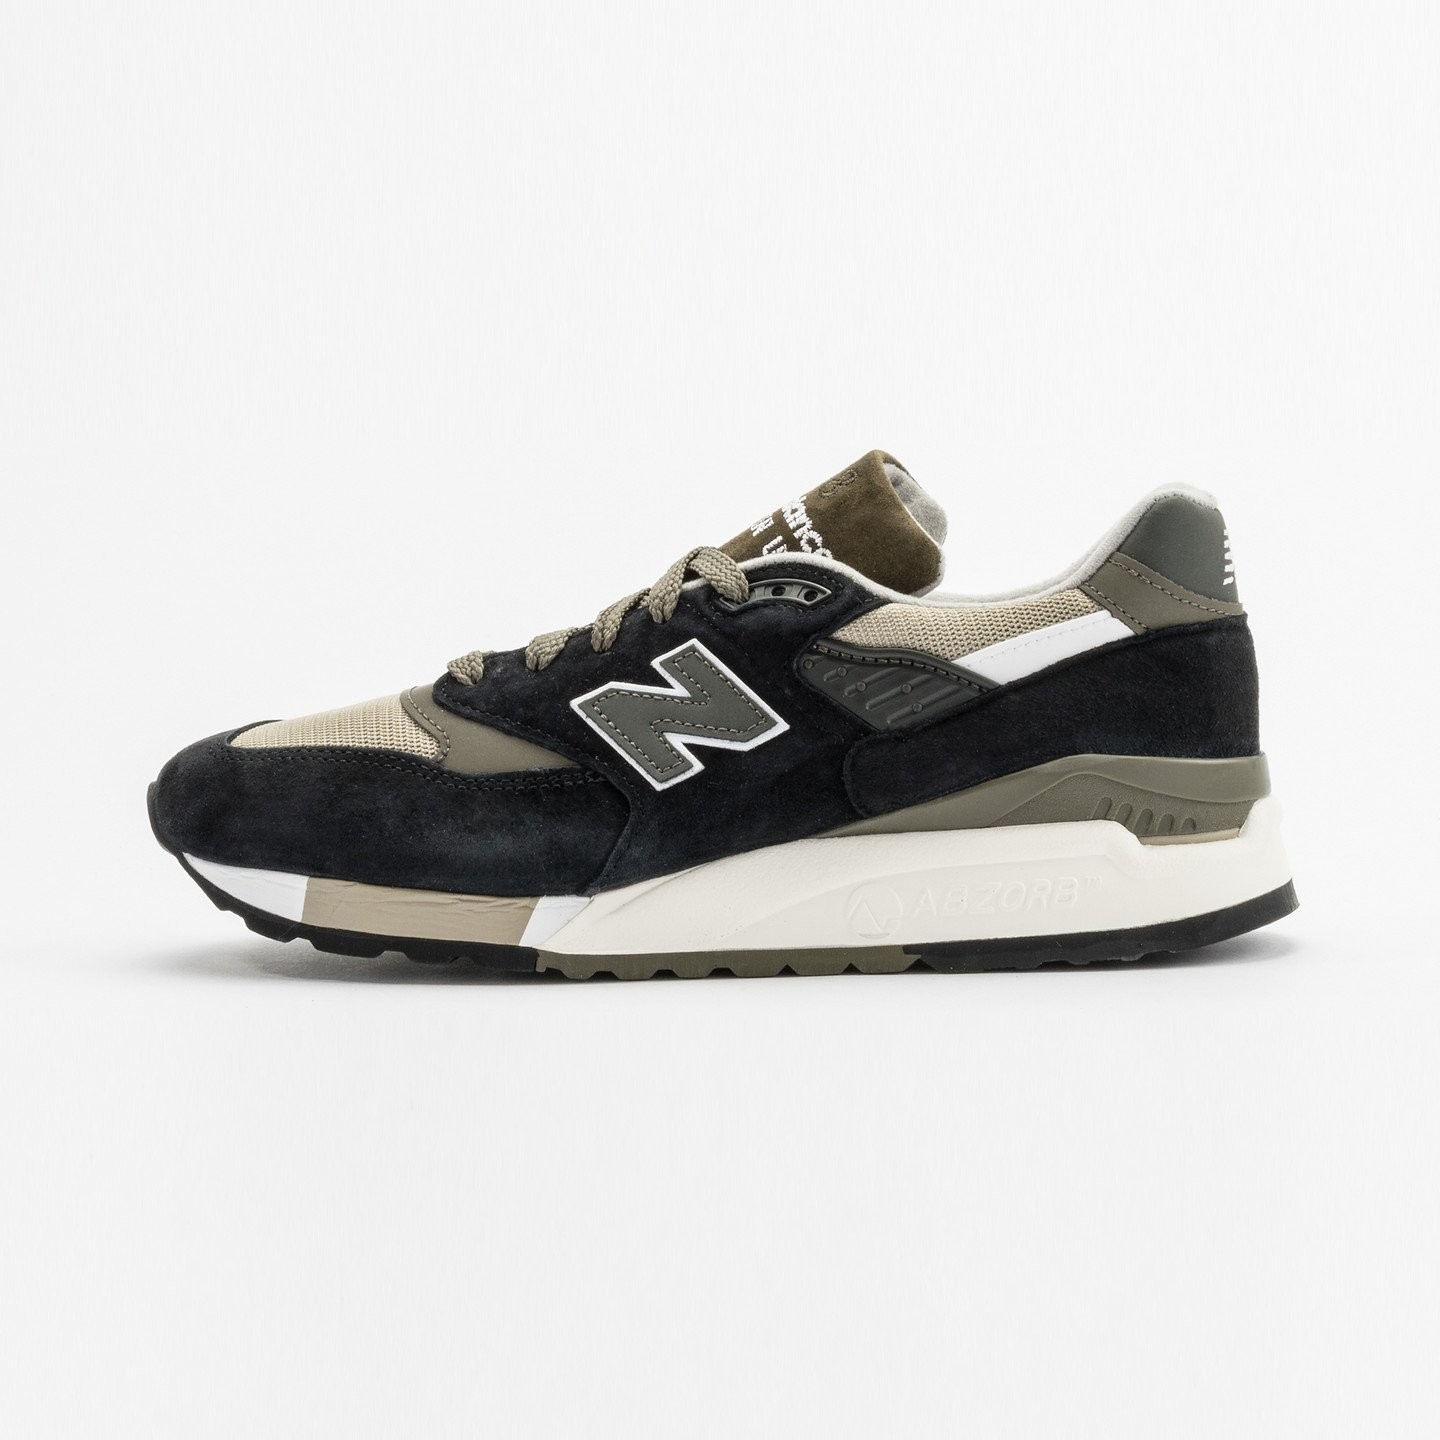 New Balance M998 Made in USA Olive / Black M998CTR-42.5